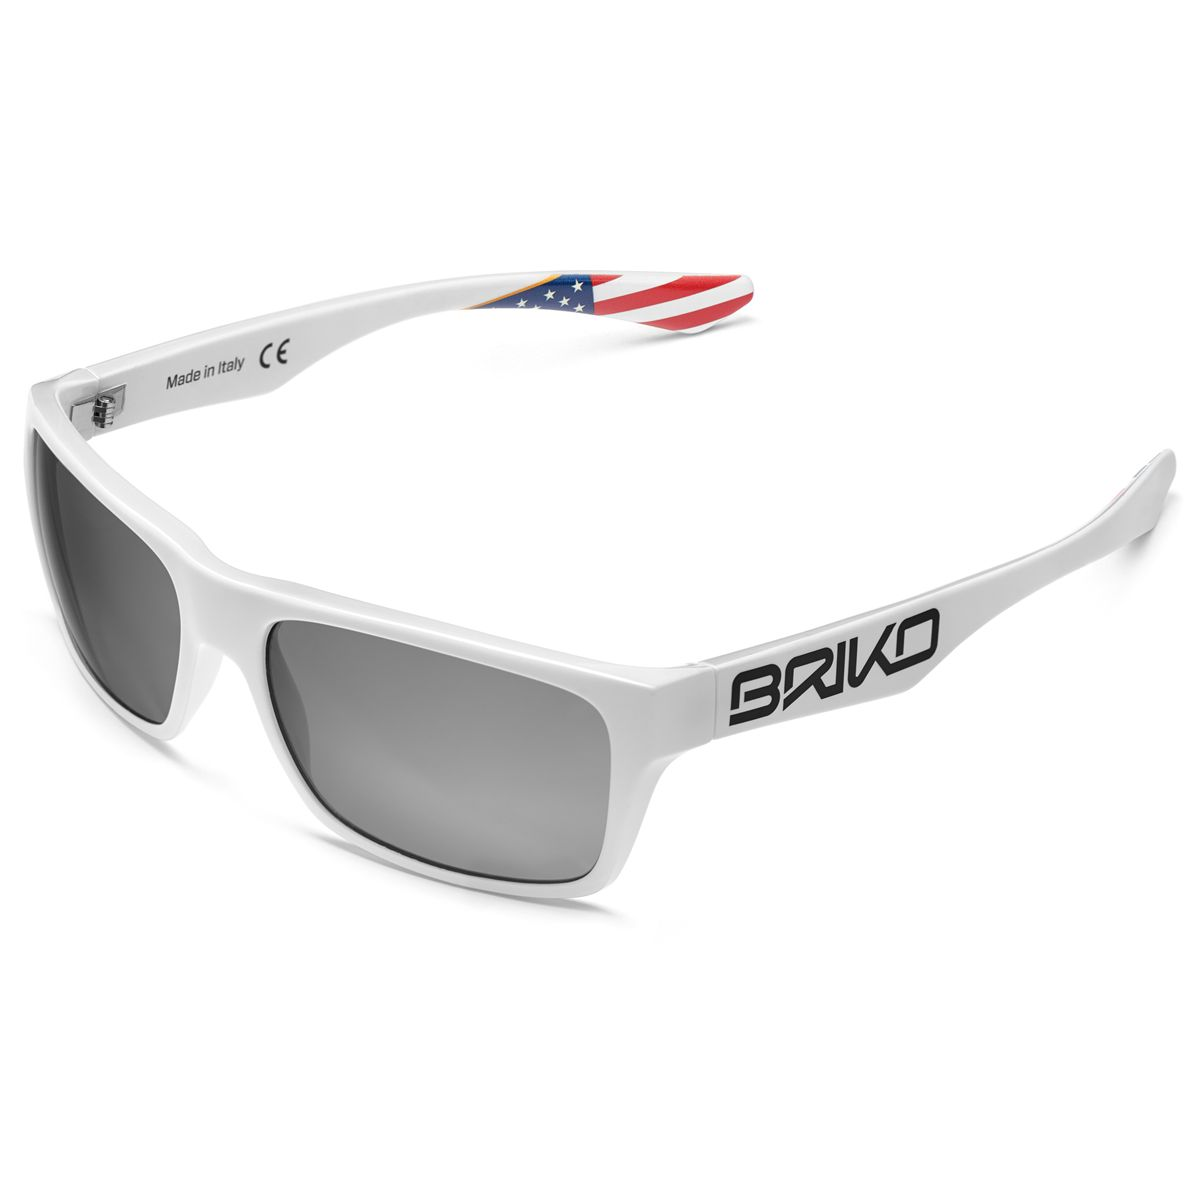 Briko GLASSES PATRIOT - USSA Man Woman Ski sport USA Sunglasses